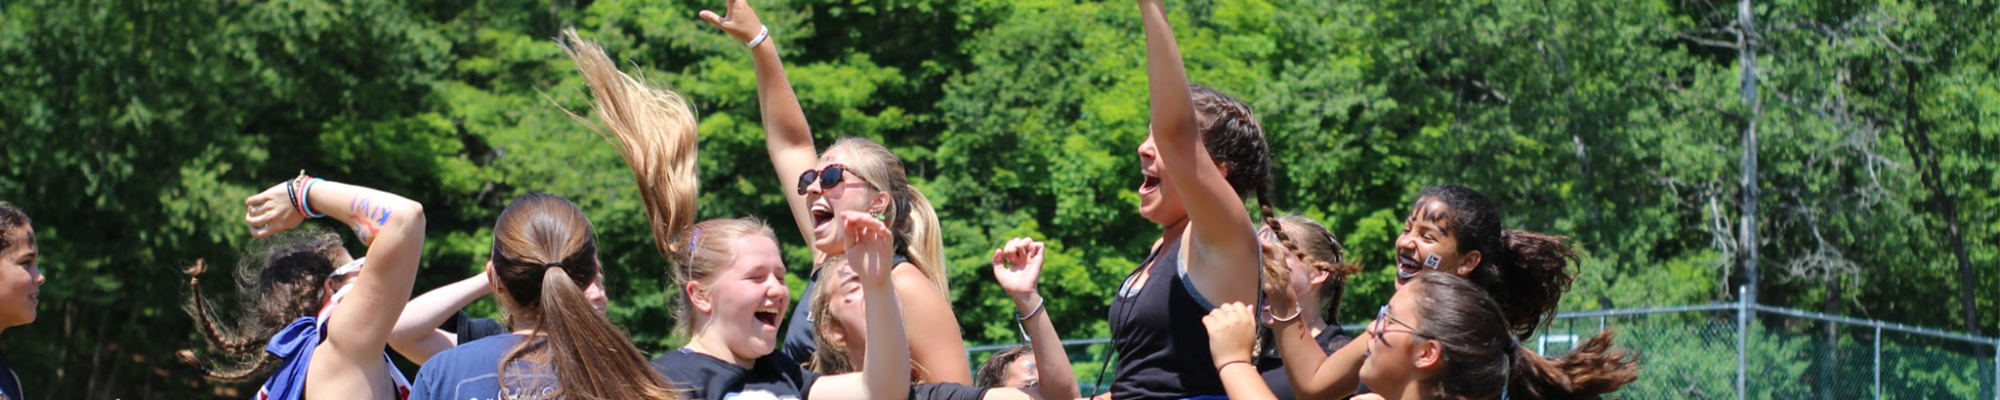 Teen girls cheering, as they attend an all-girl, affordable summer camp in New York